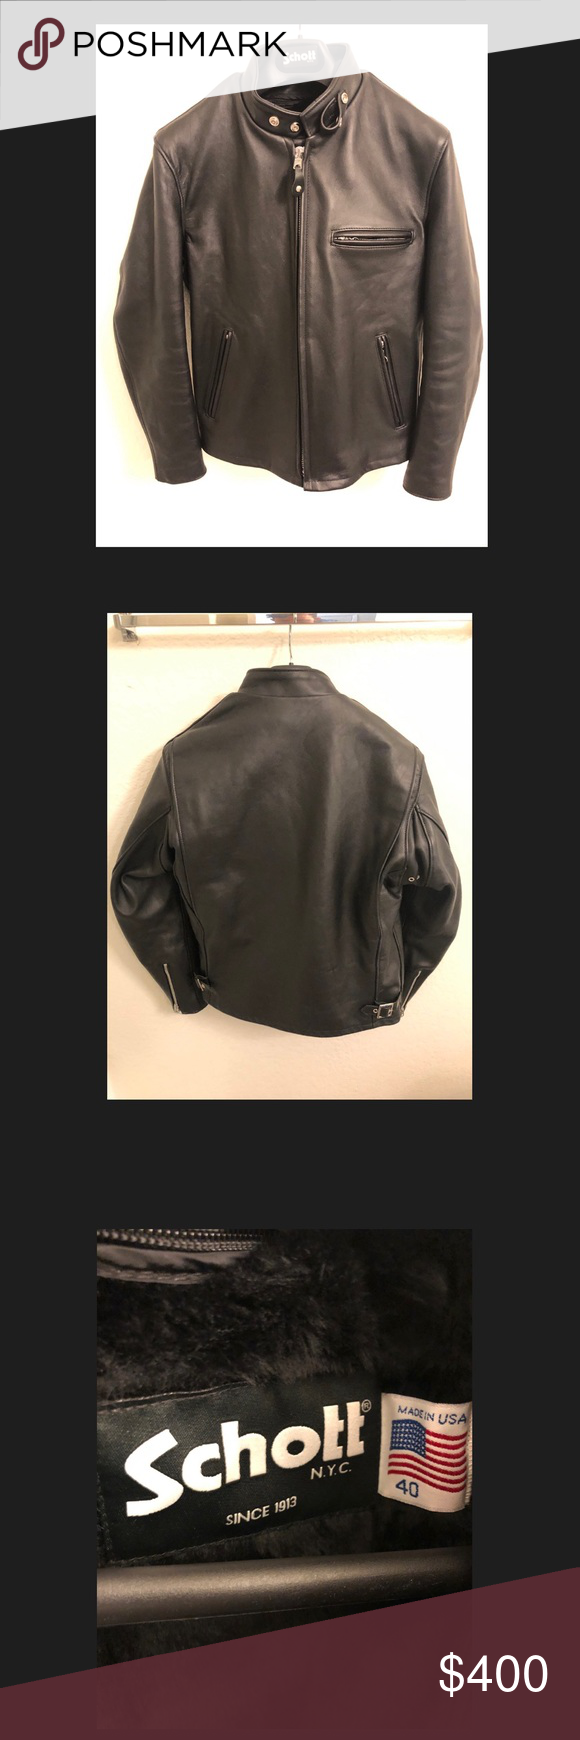 Schott 641 Size 40 Single Rider Steerhide Leather Jacket Used It Handful Of Times Retail Price 750 Schott Nyc Jacket Clothes Design Leather Jacket Mens Tops [ 1740 x 580 Pixel ]